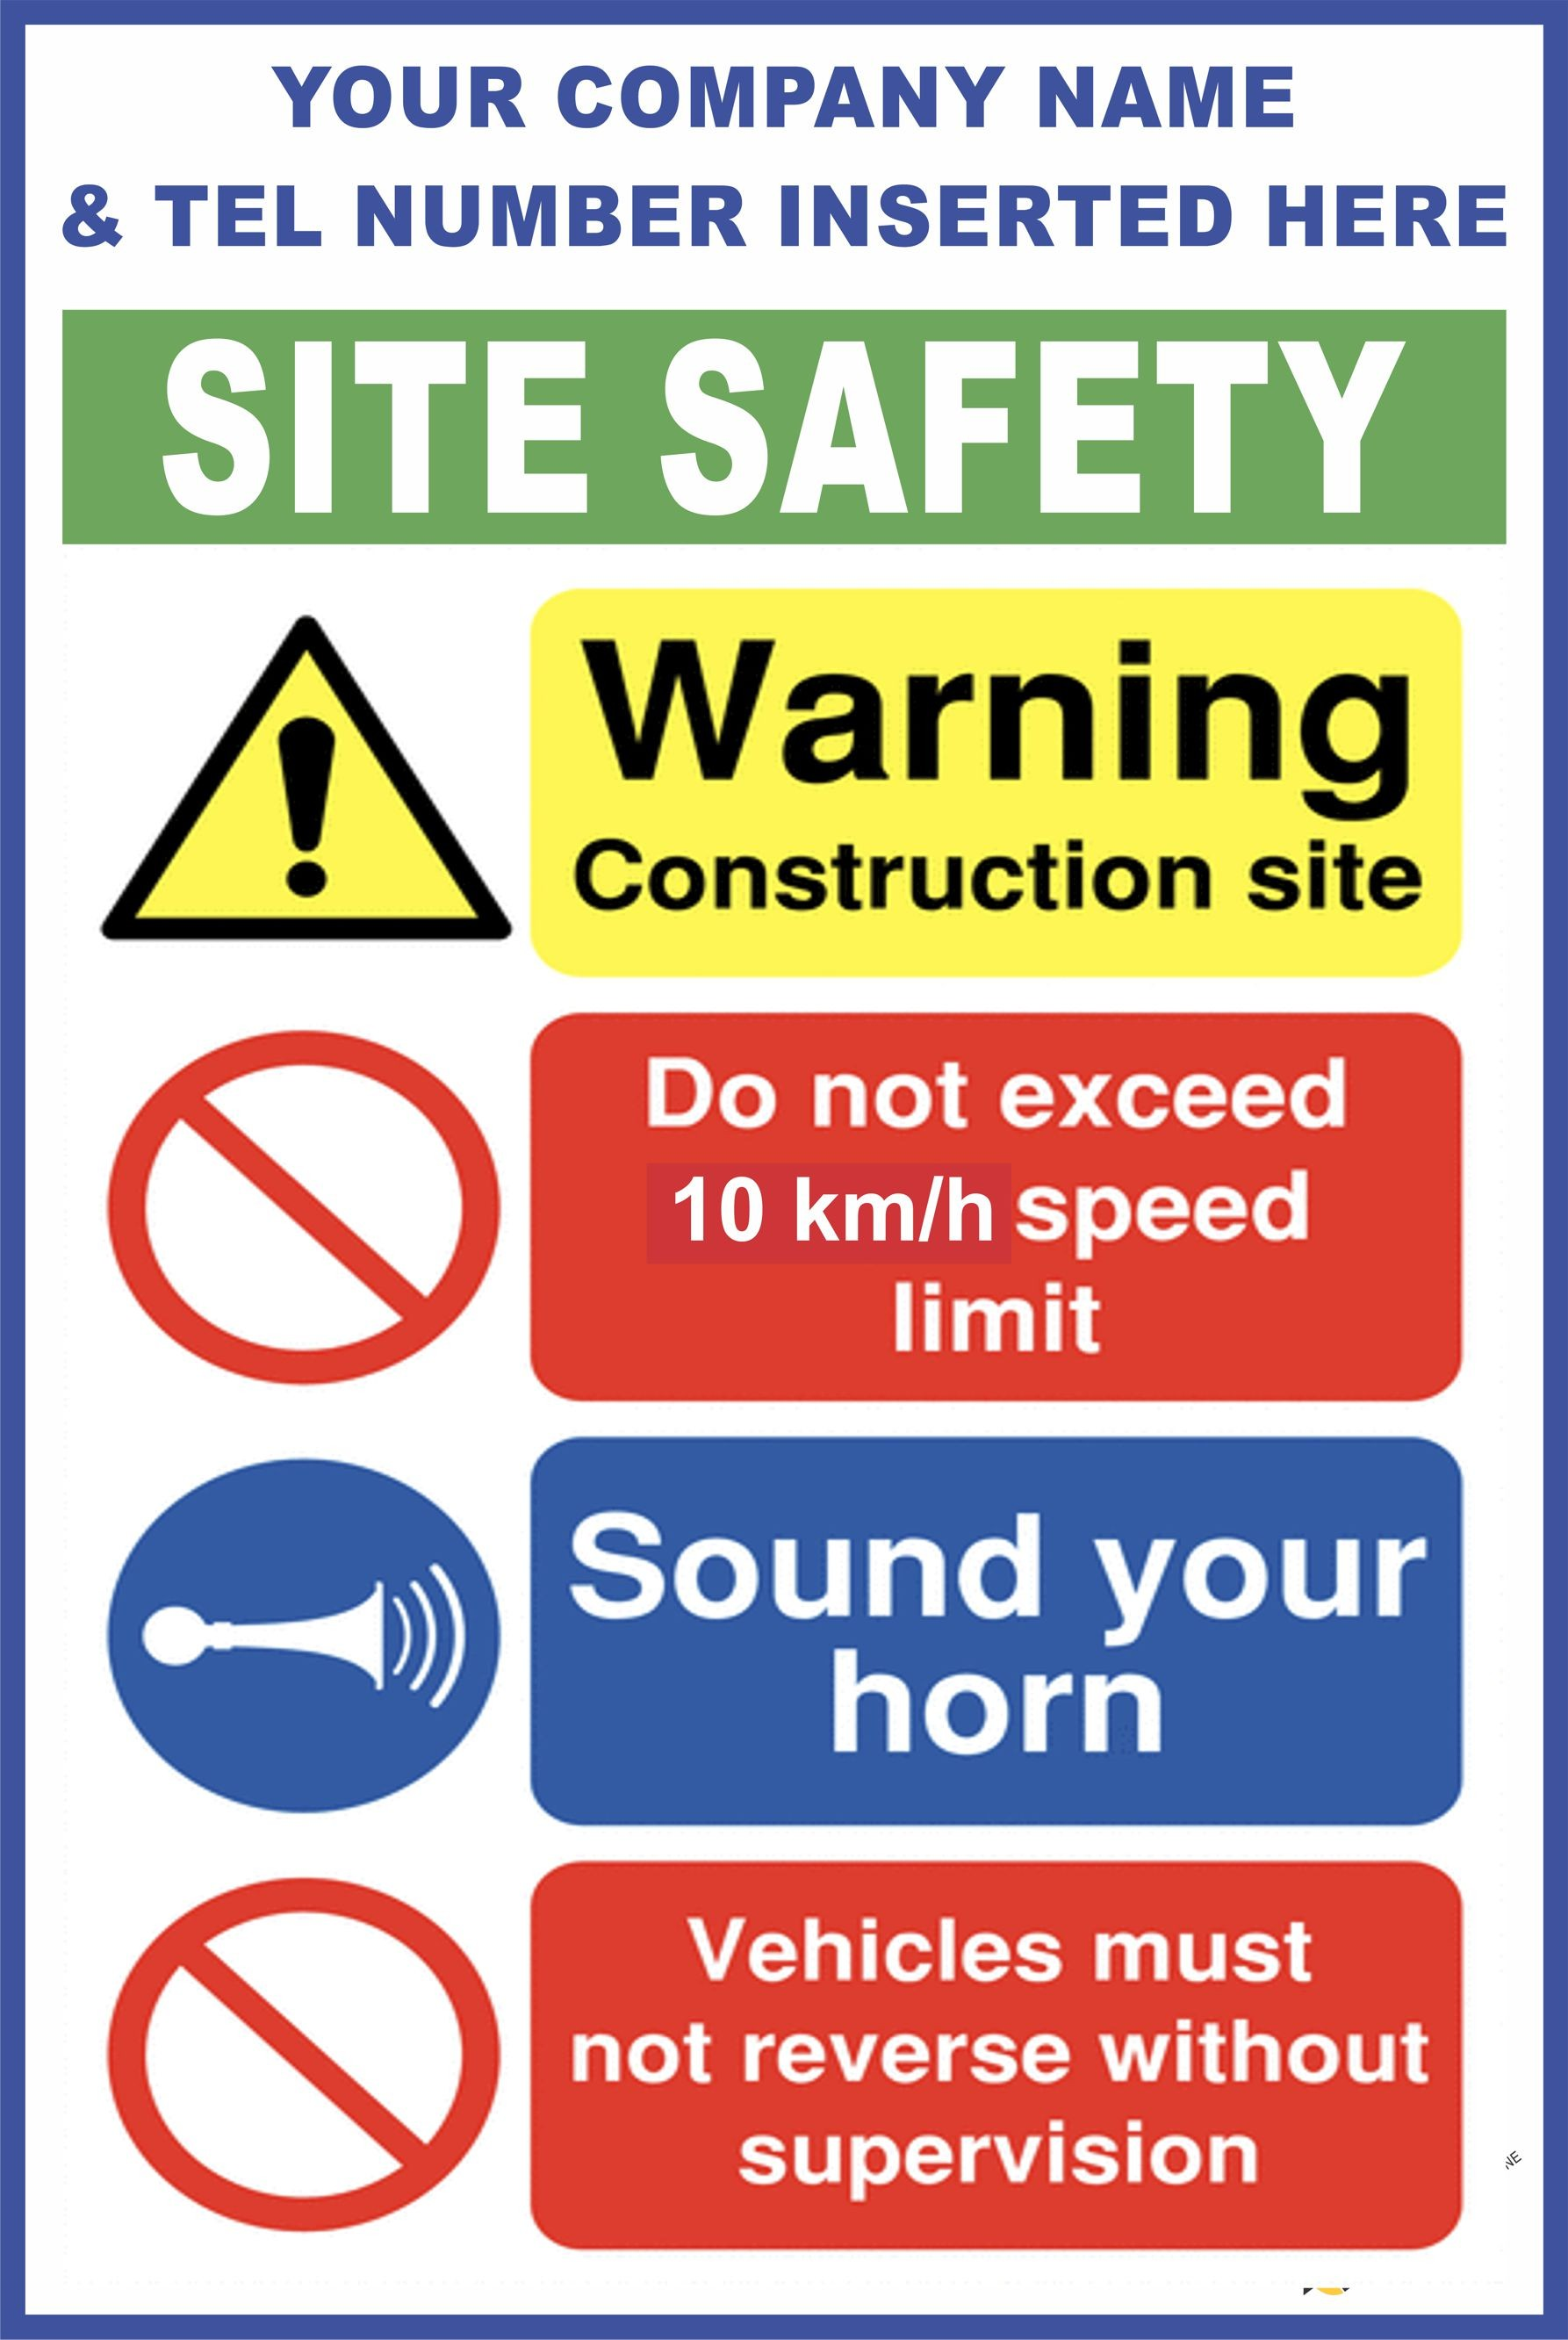 c78 construction site safety vehicle on site rules sign